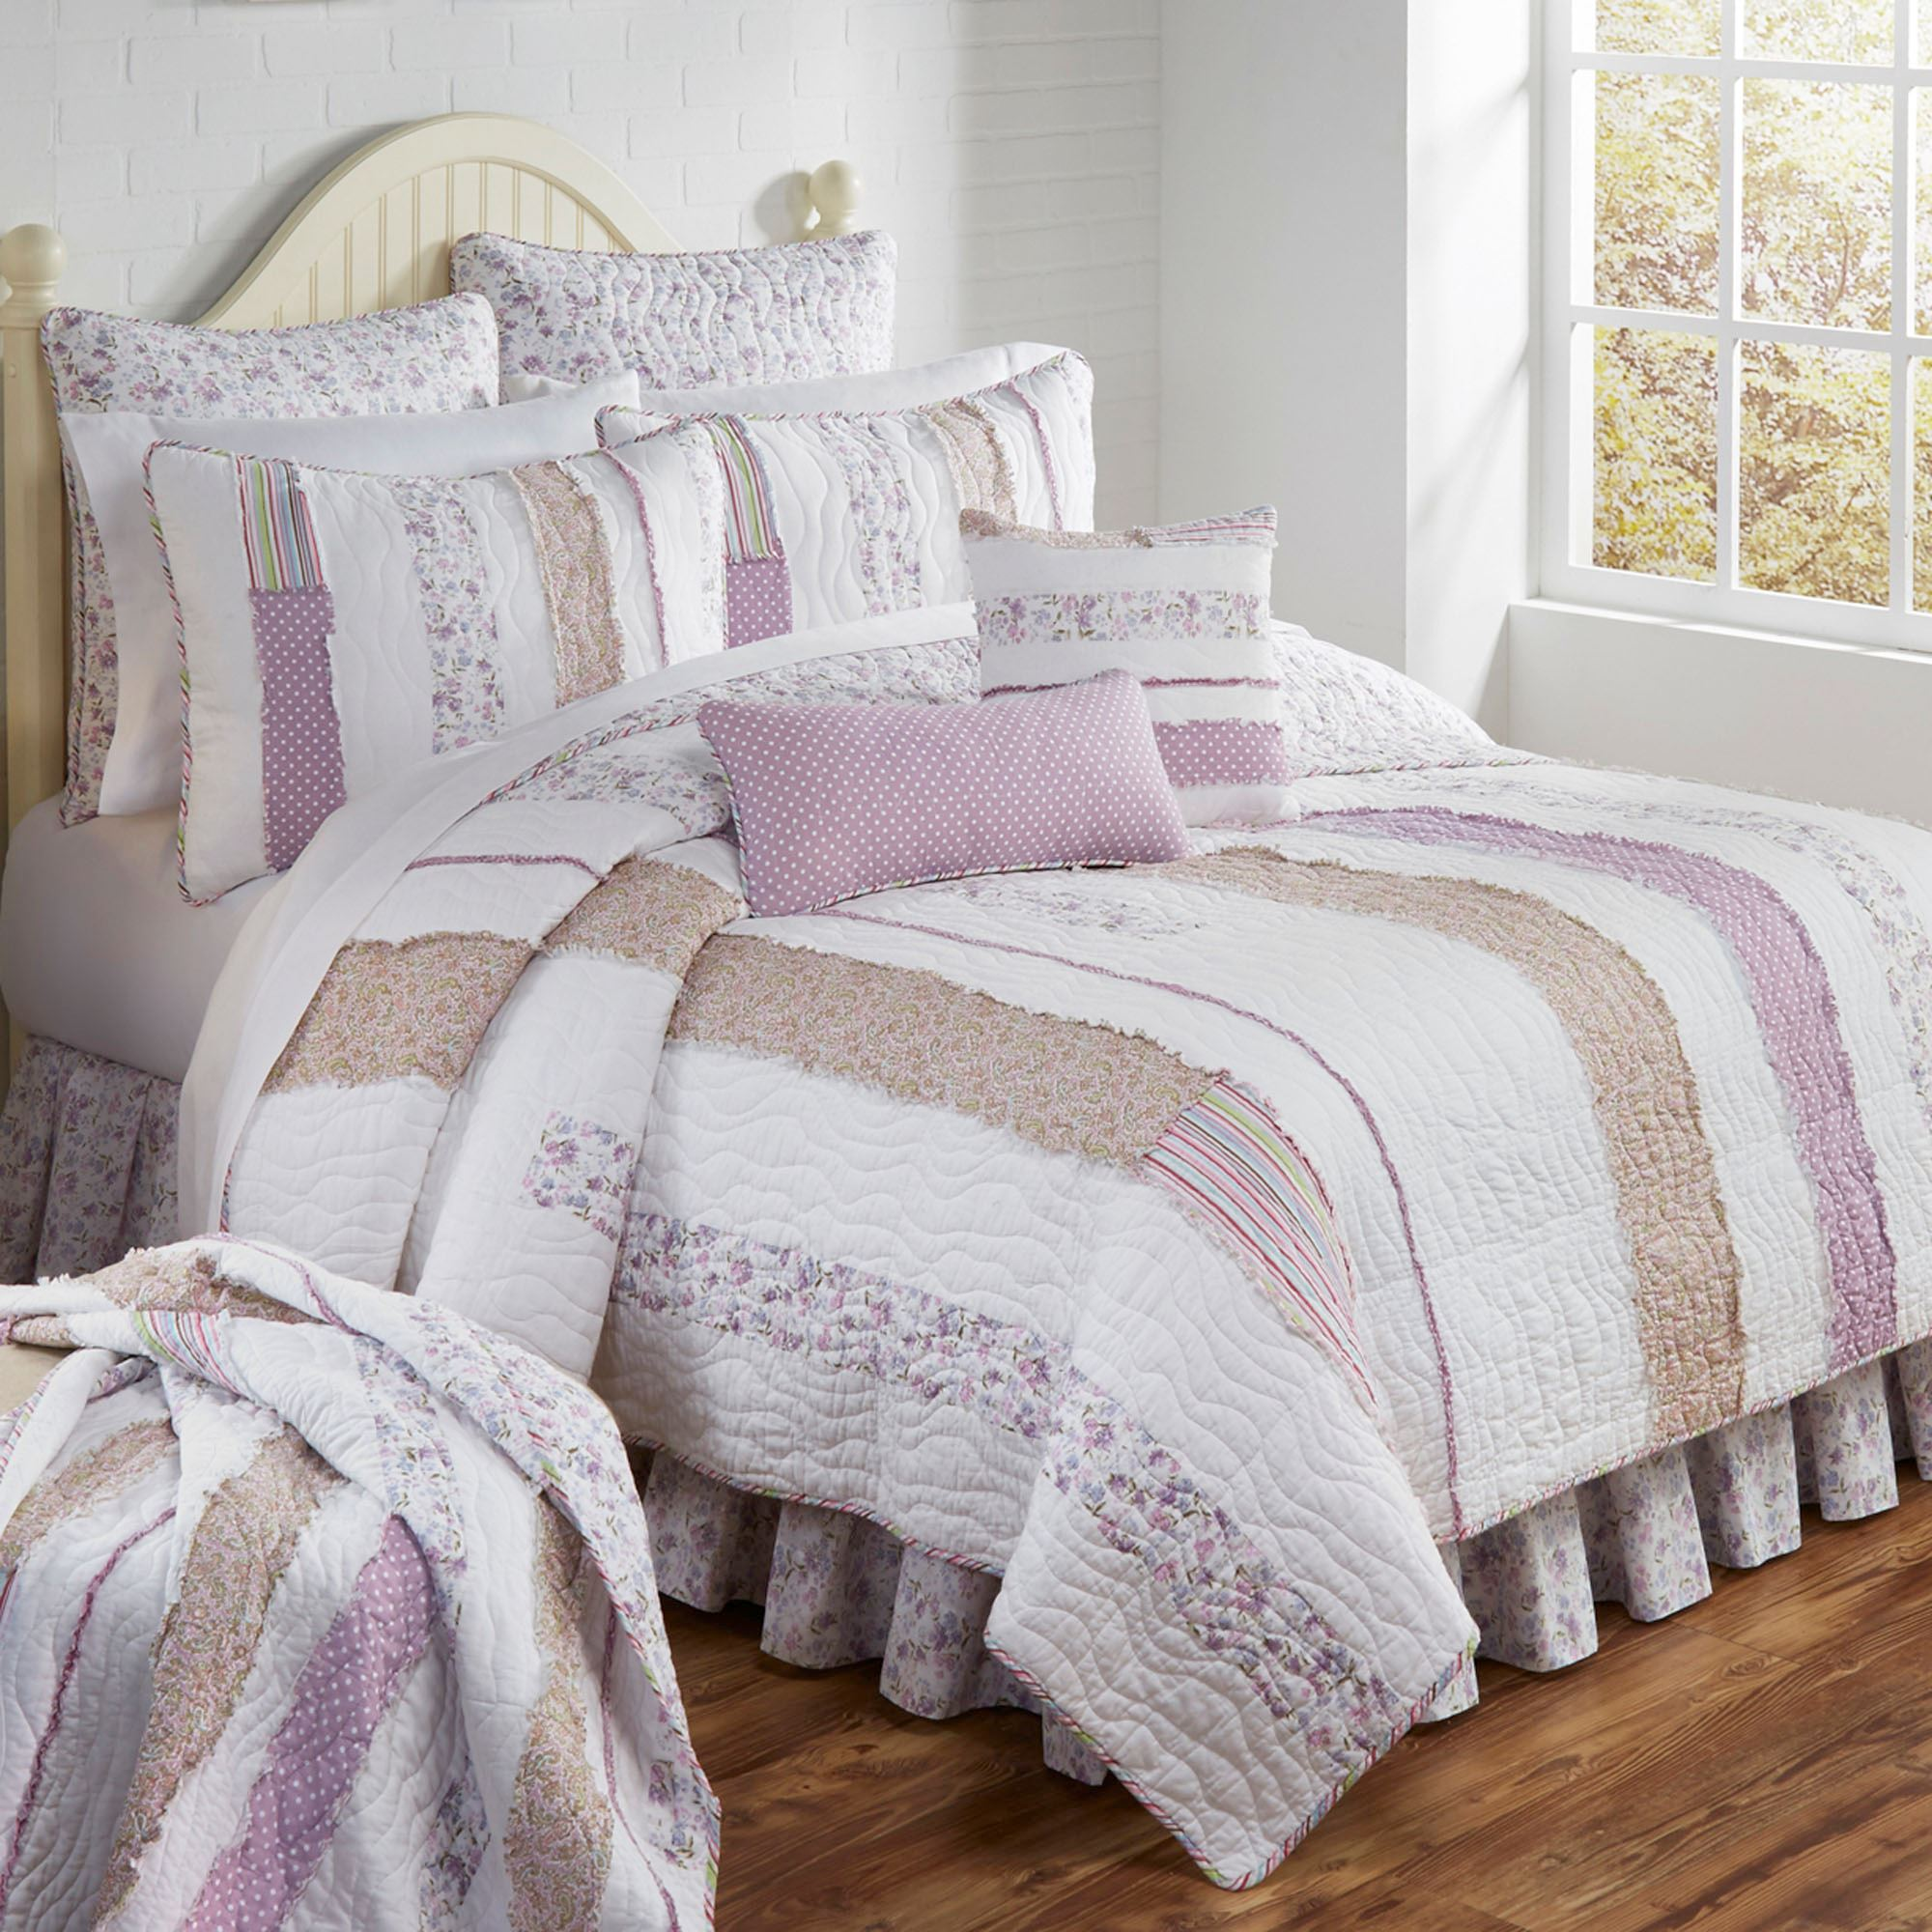 floral yellow design pcs blanket cover and quilt bedspread pale pieces gray blue taupe light patchwork bedding